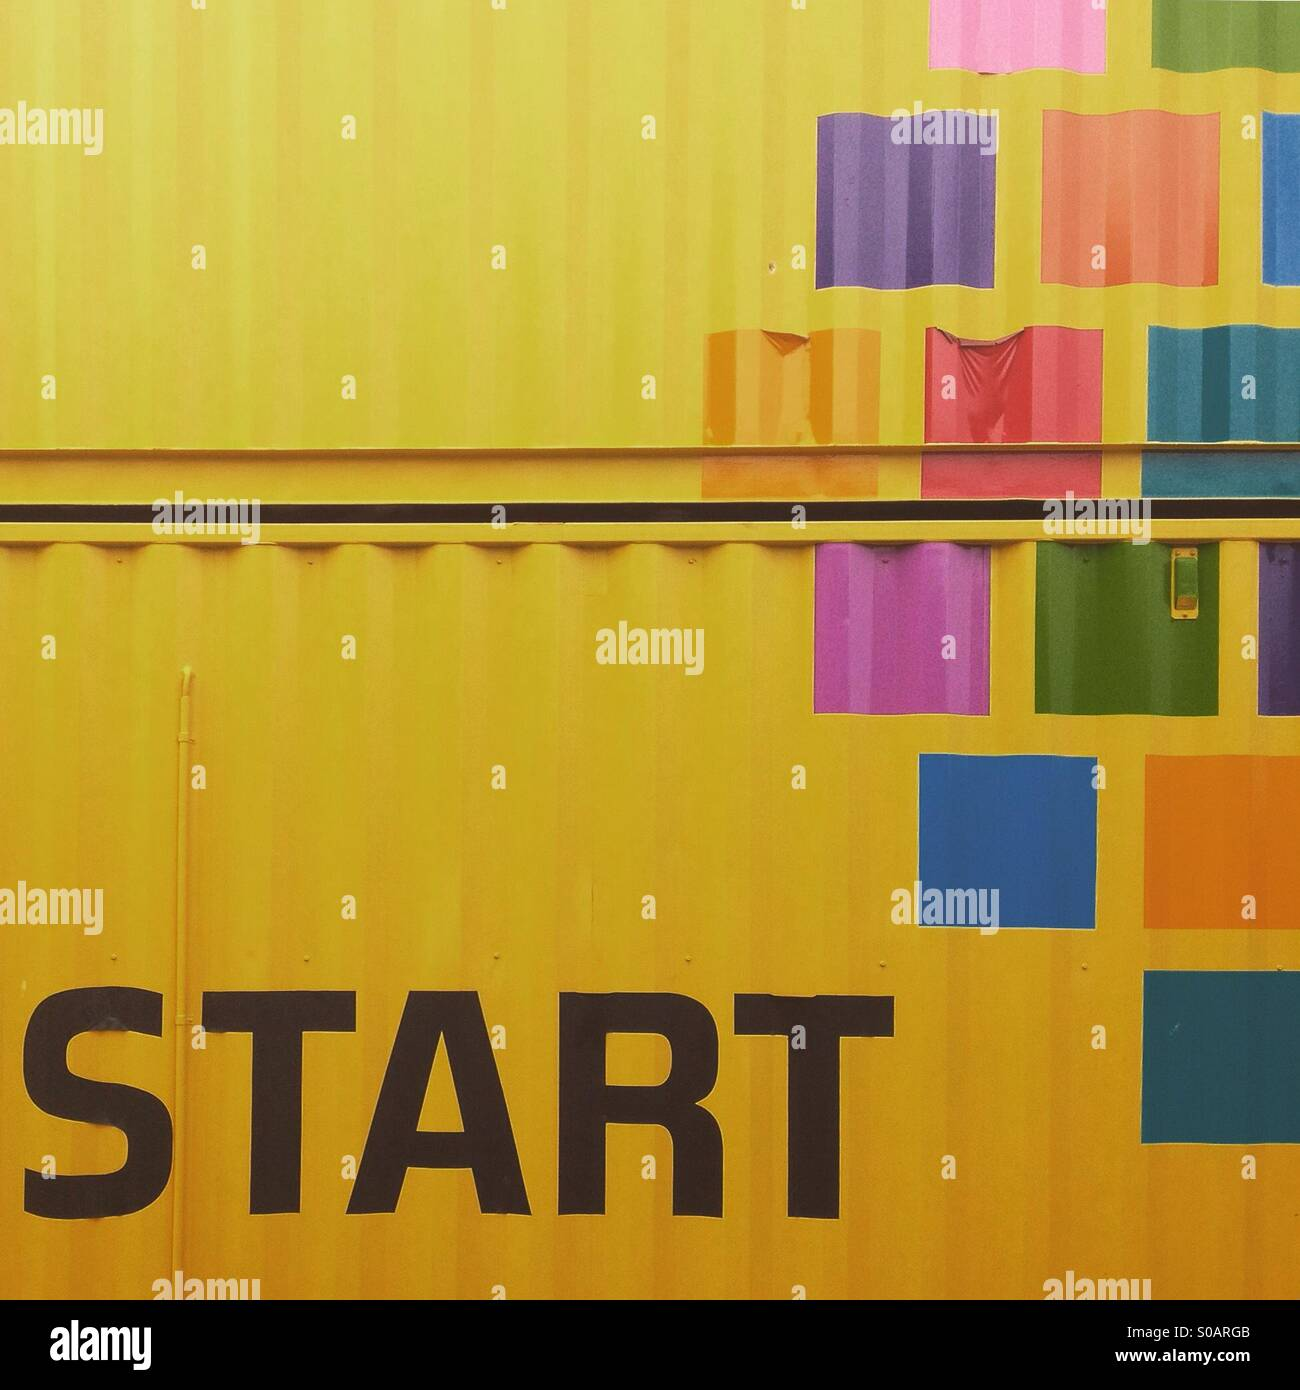 Start lettering printed on a container - Stock Image